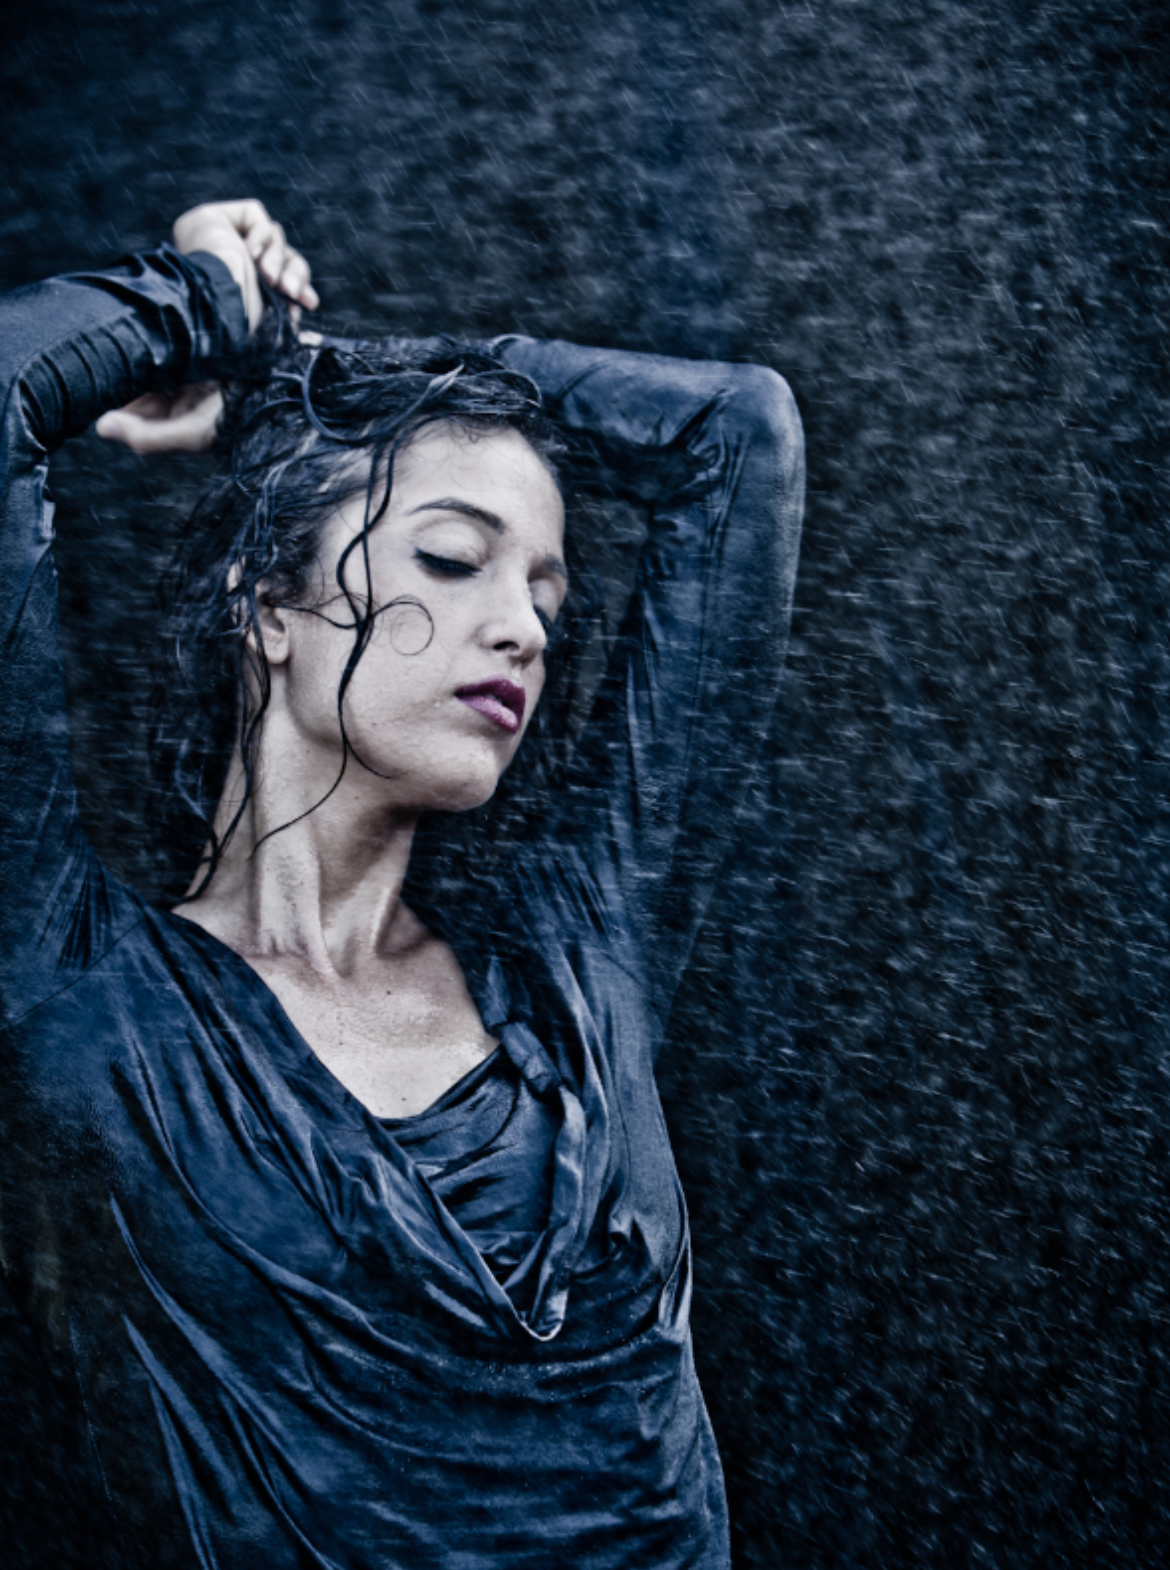 PHOTO SHOOT _RAIN EFFECTS_